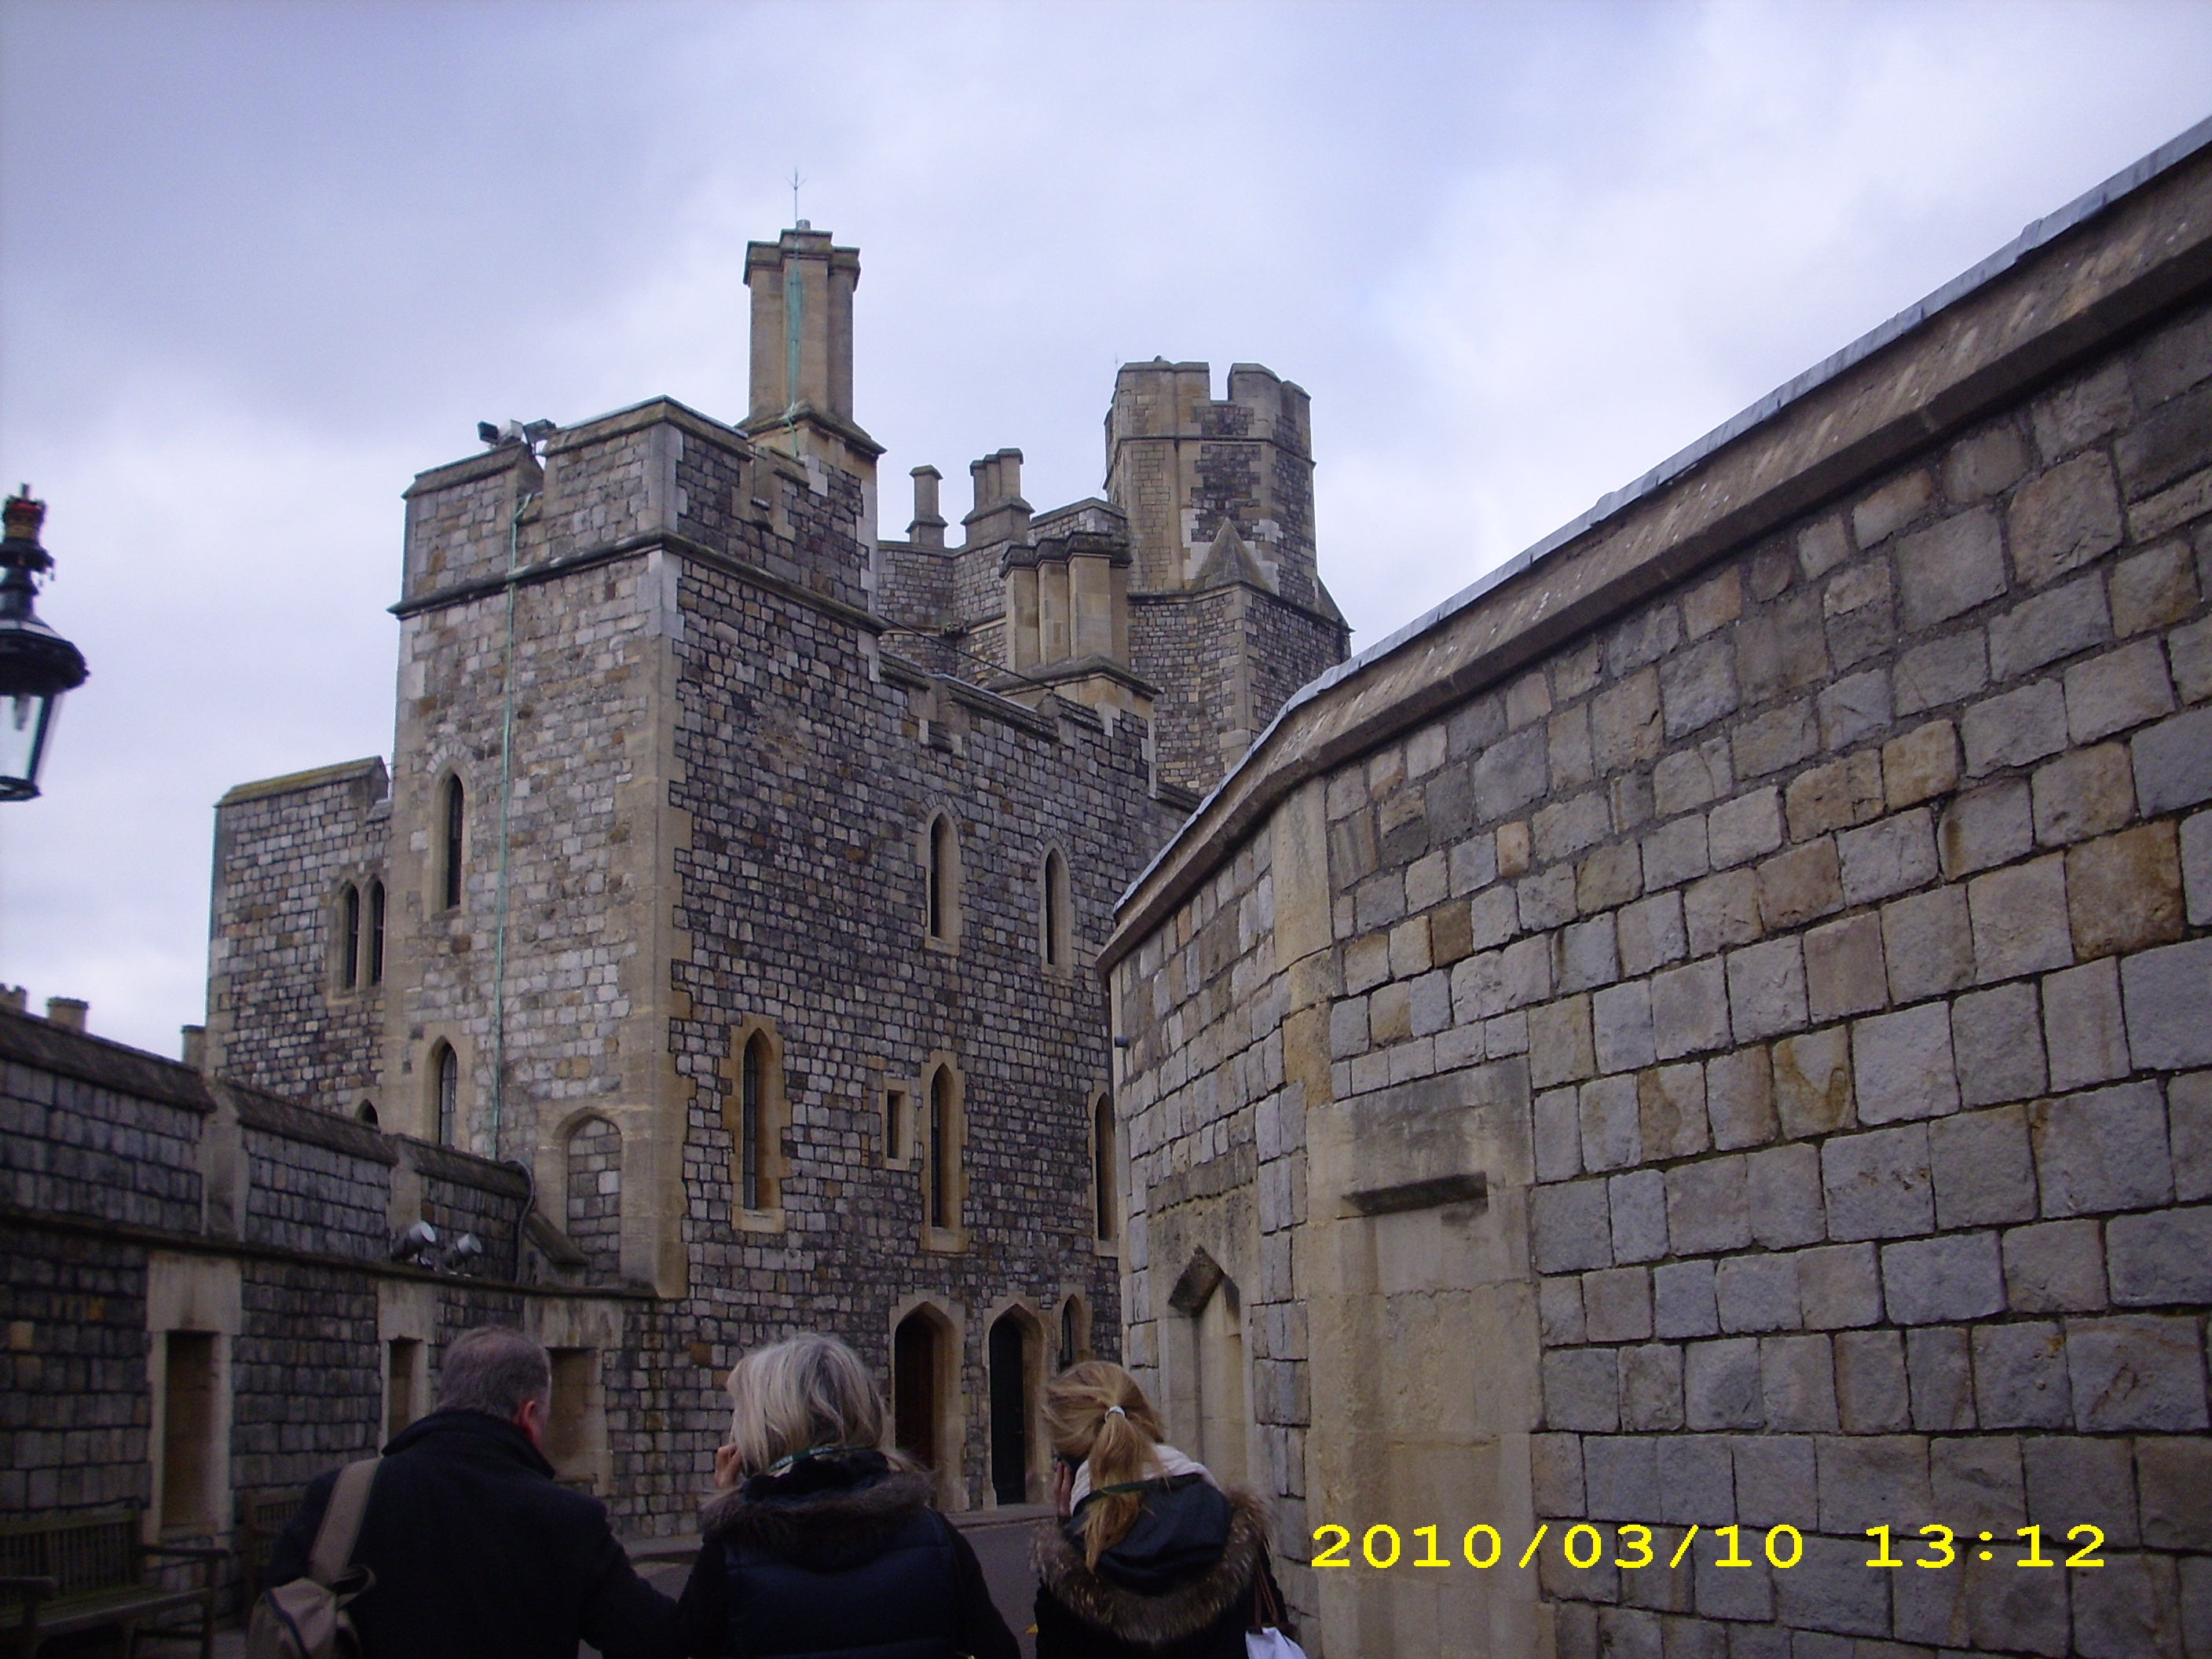 Turismo en Castillo de Windsor